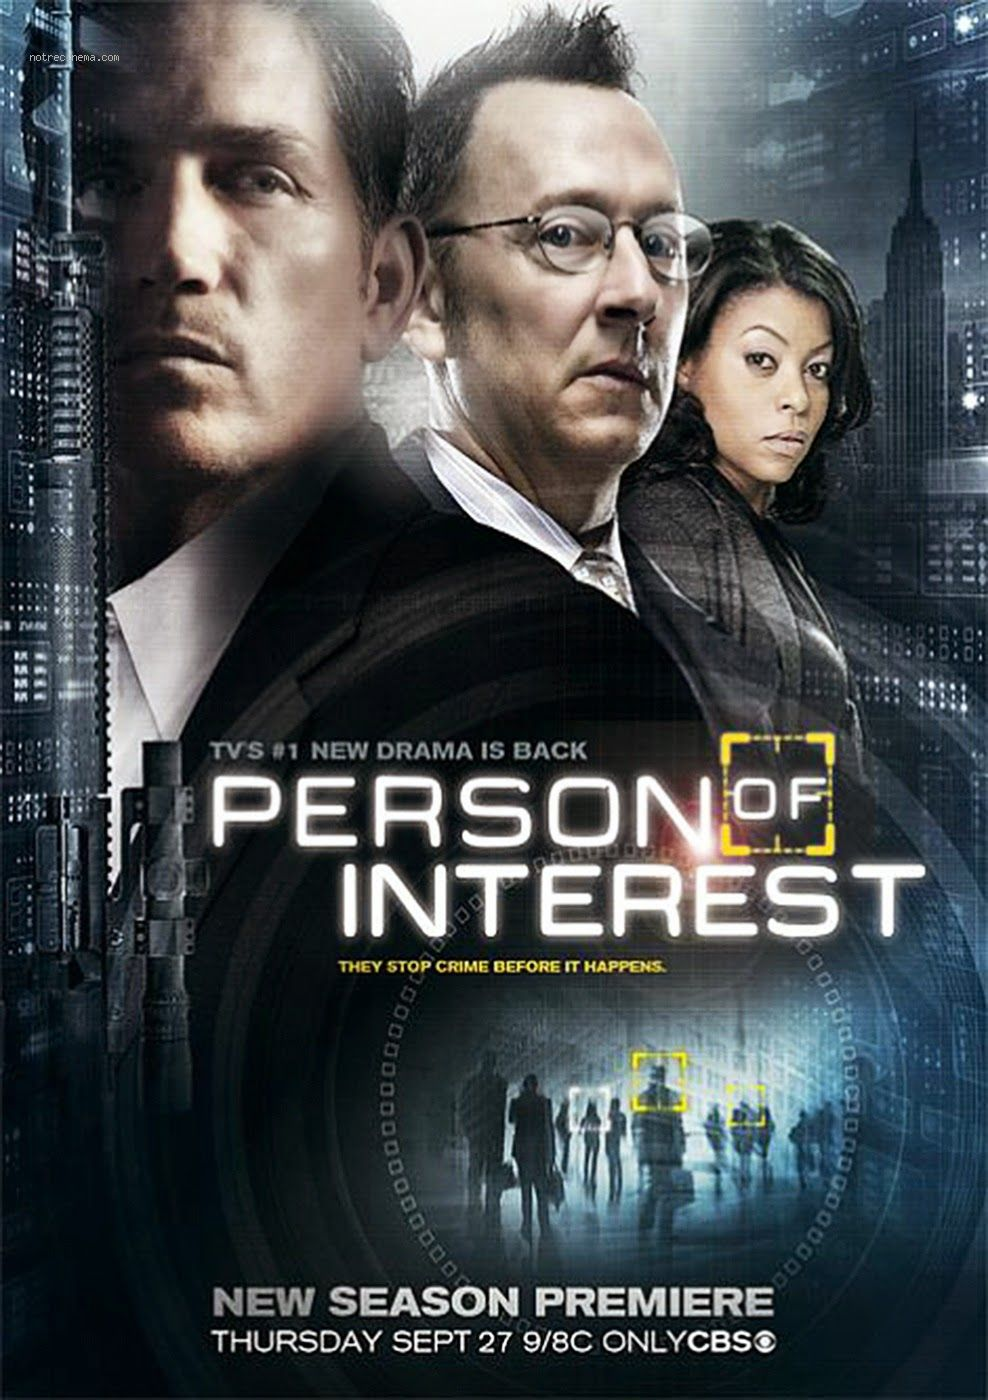 person-of-interest-poster_424618_29995.jpg (988×1400)